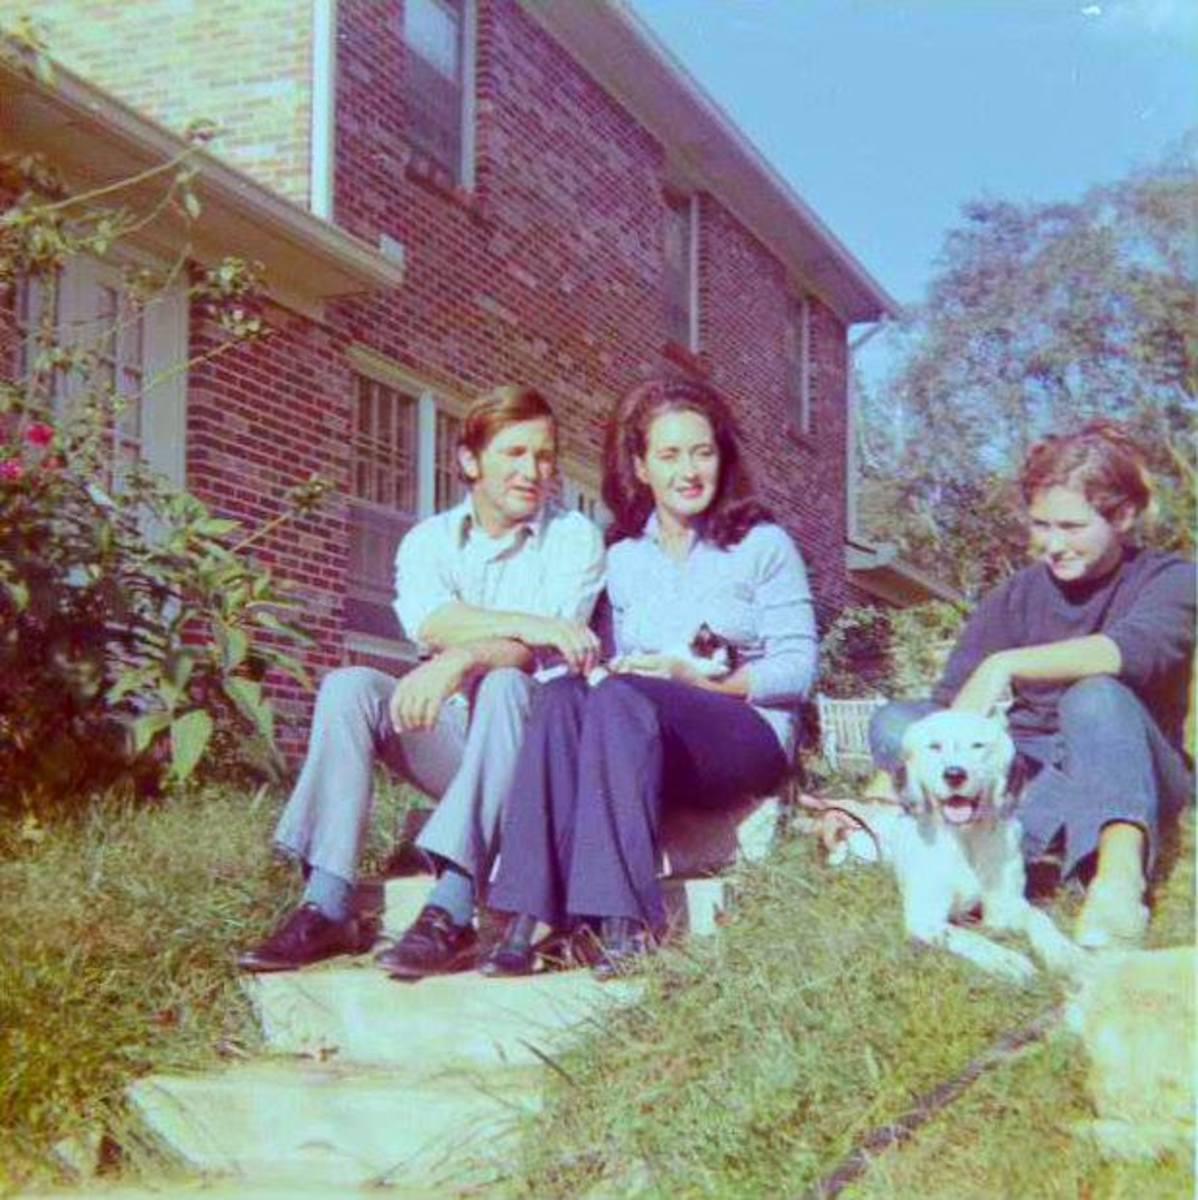 Here is a photo taken with my Kodak X-15 back in 1971. The quality was wonderful for such a simple point and shoot camera. In the photo is my Daddy, Mom, and sister Celesa back in 1971 at our home on Otter Creek Road, in Nashville Tennessee.